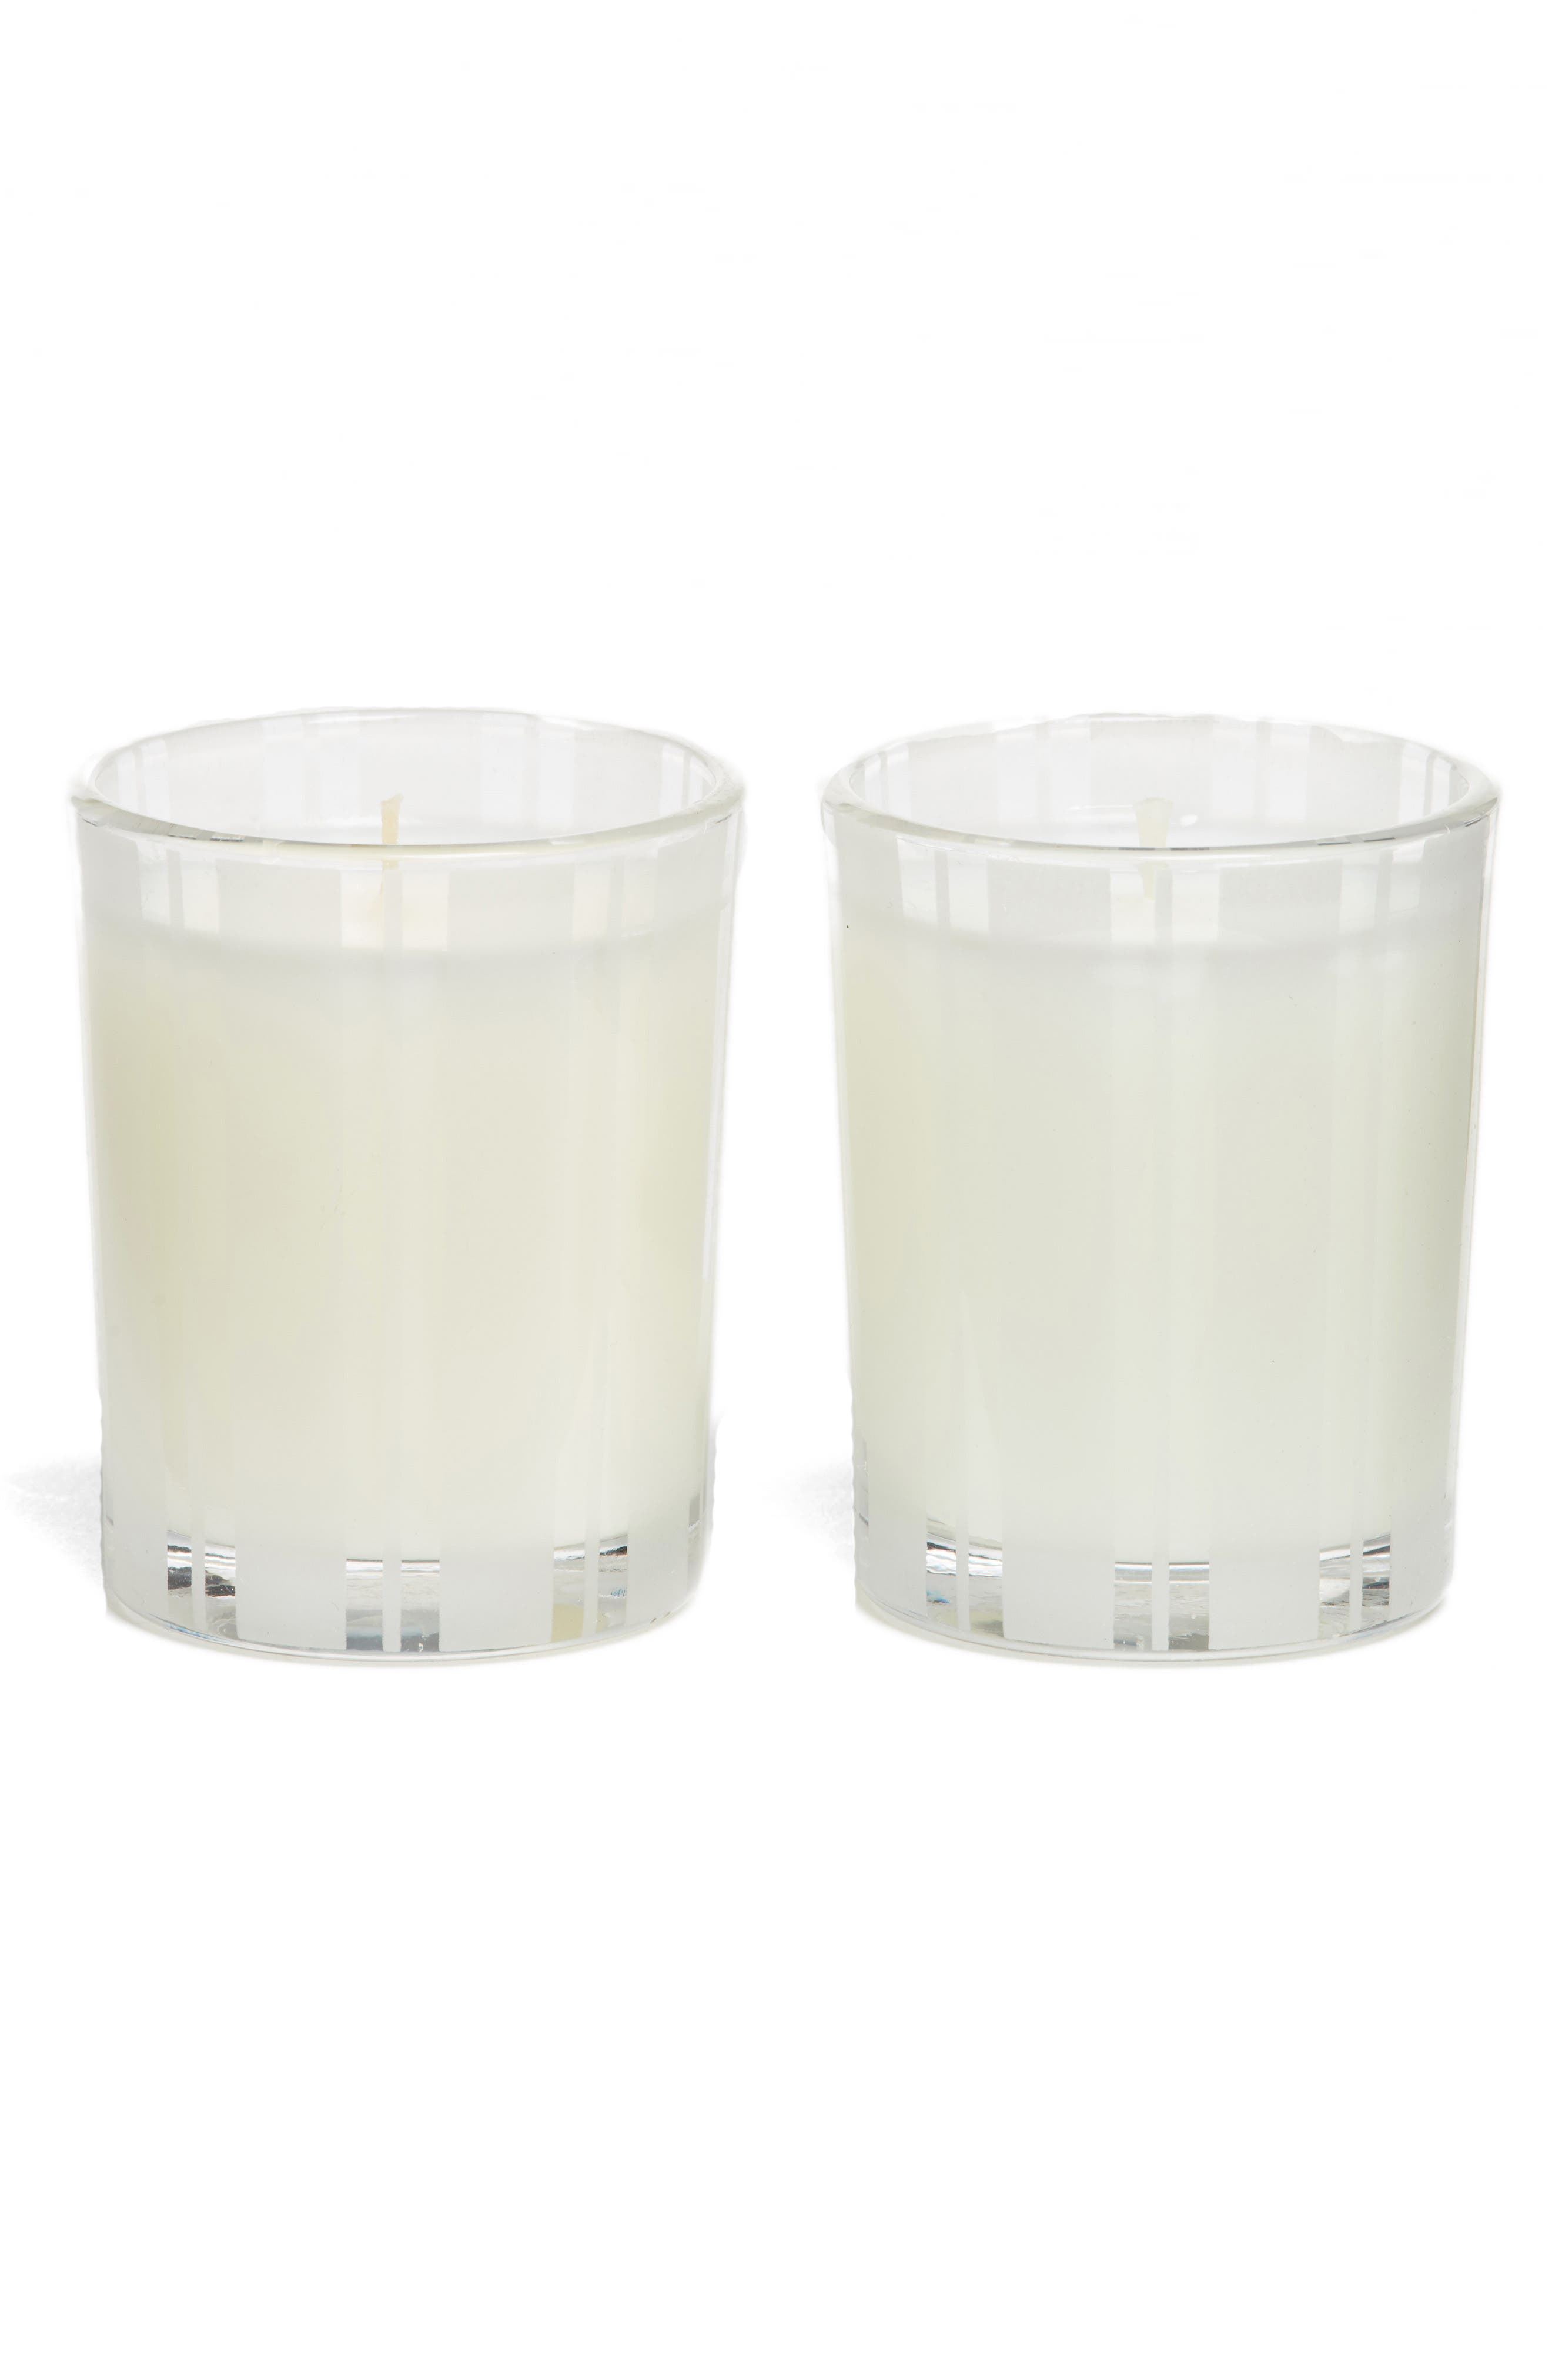 Bamboo & Grapefruit Votive Candle Duo,                         Main,                         color, 000